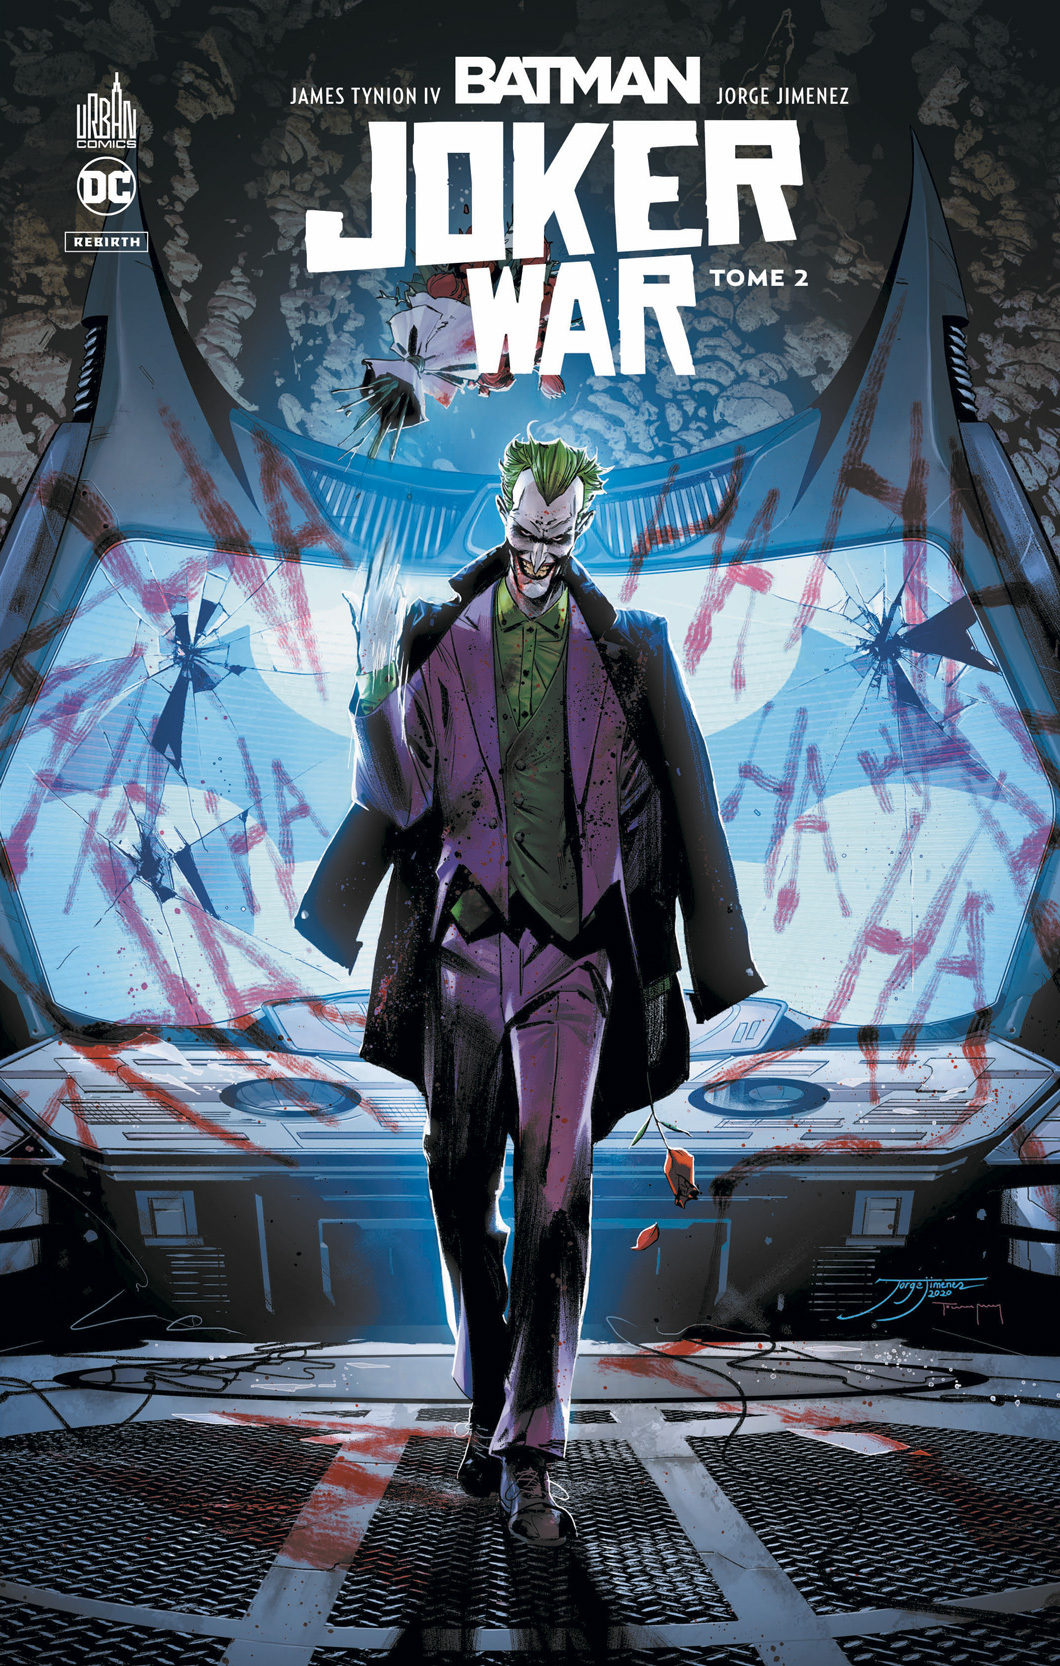 BATMAN JOKER WAR TOME 2